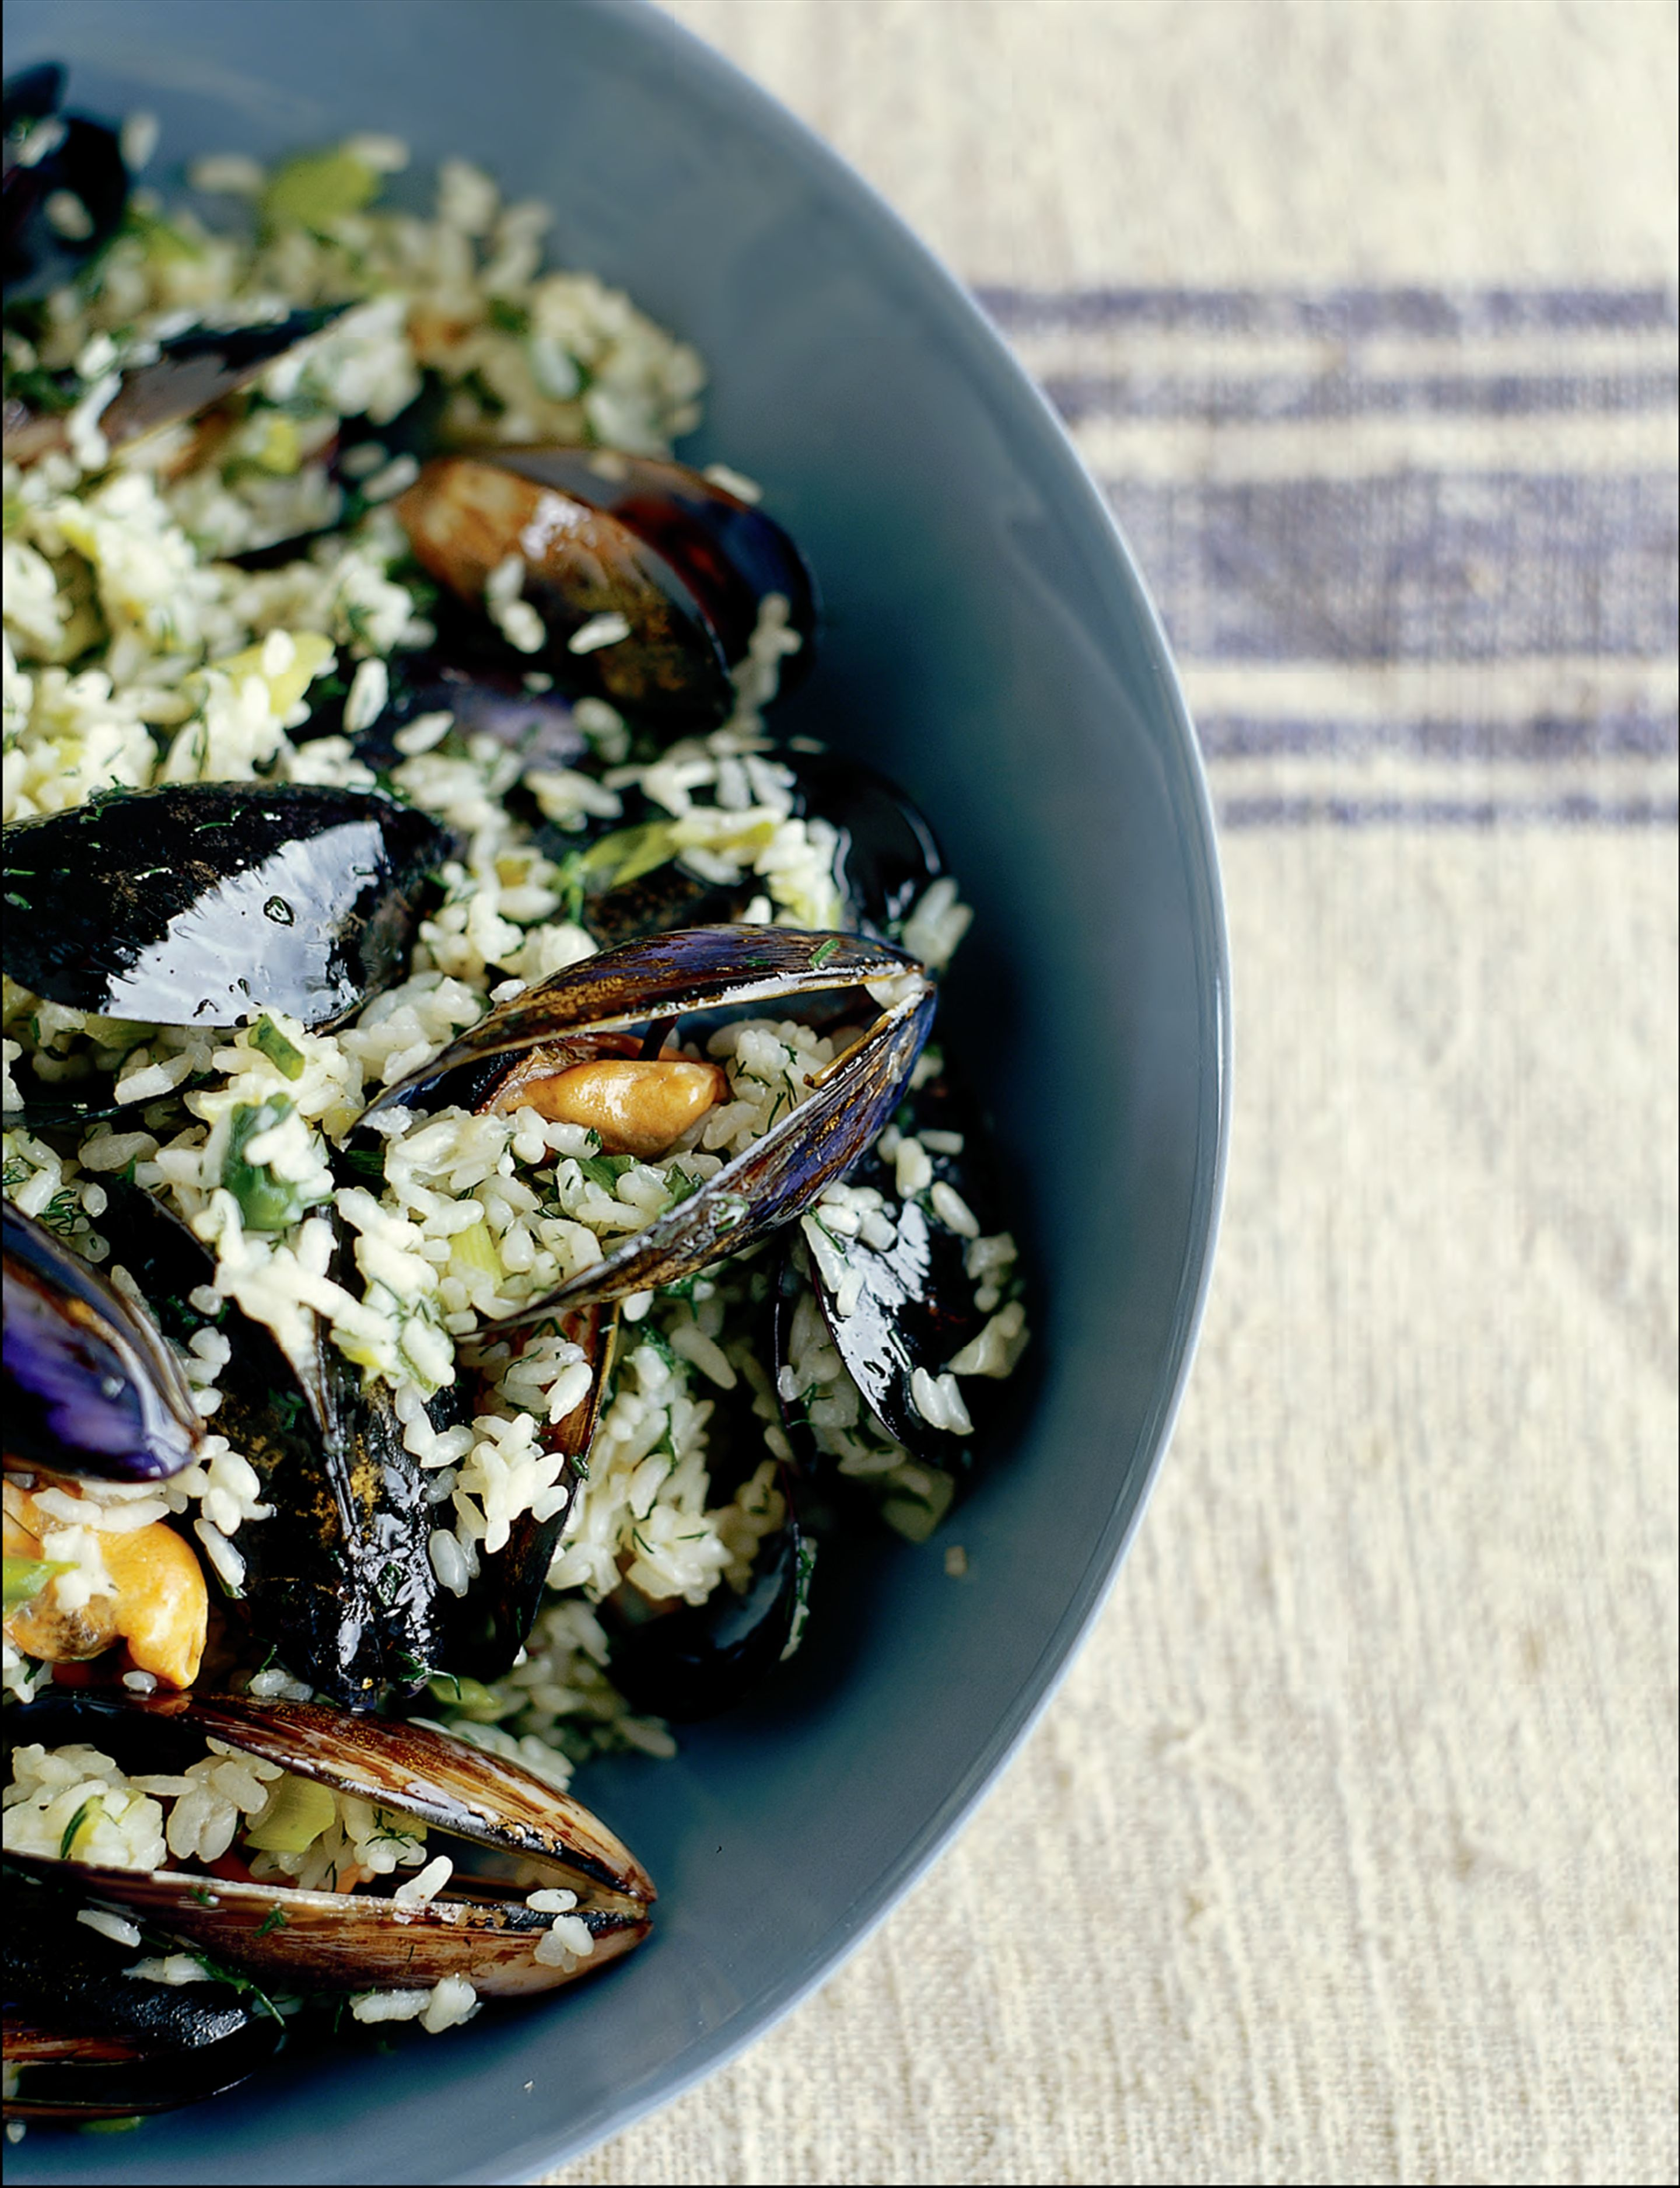 Mussels with rice and dill